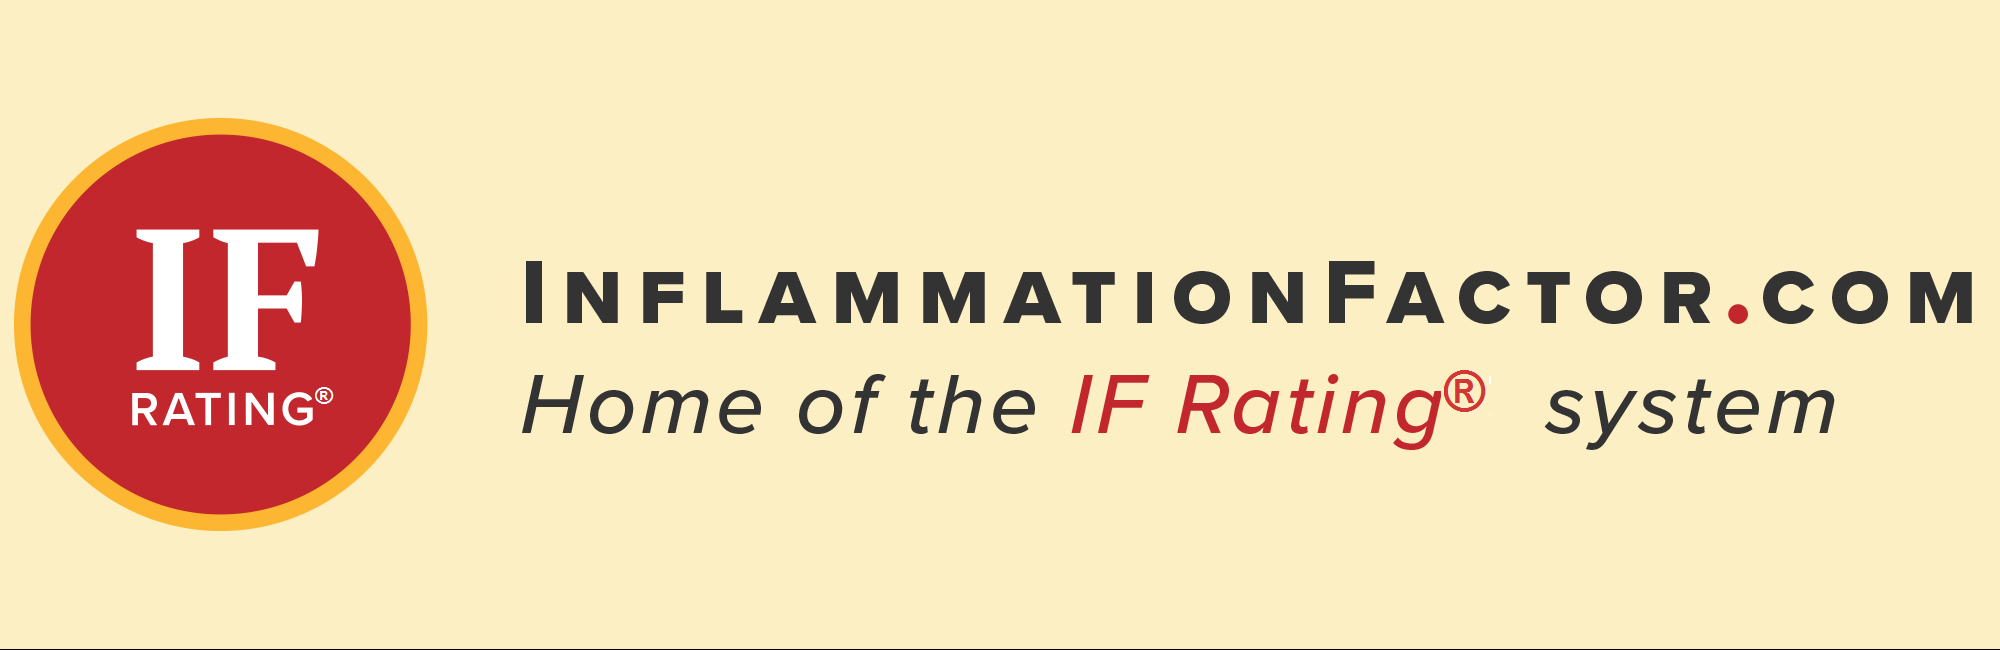 Inflammation Factor